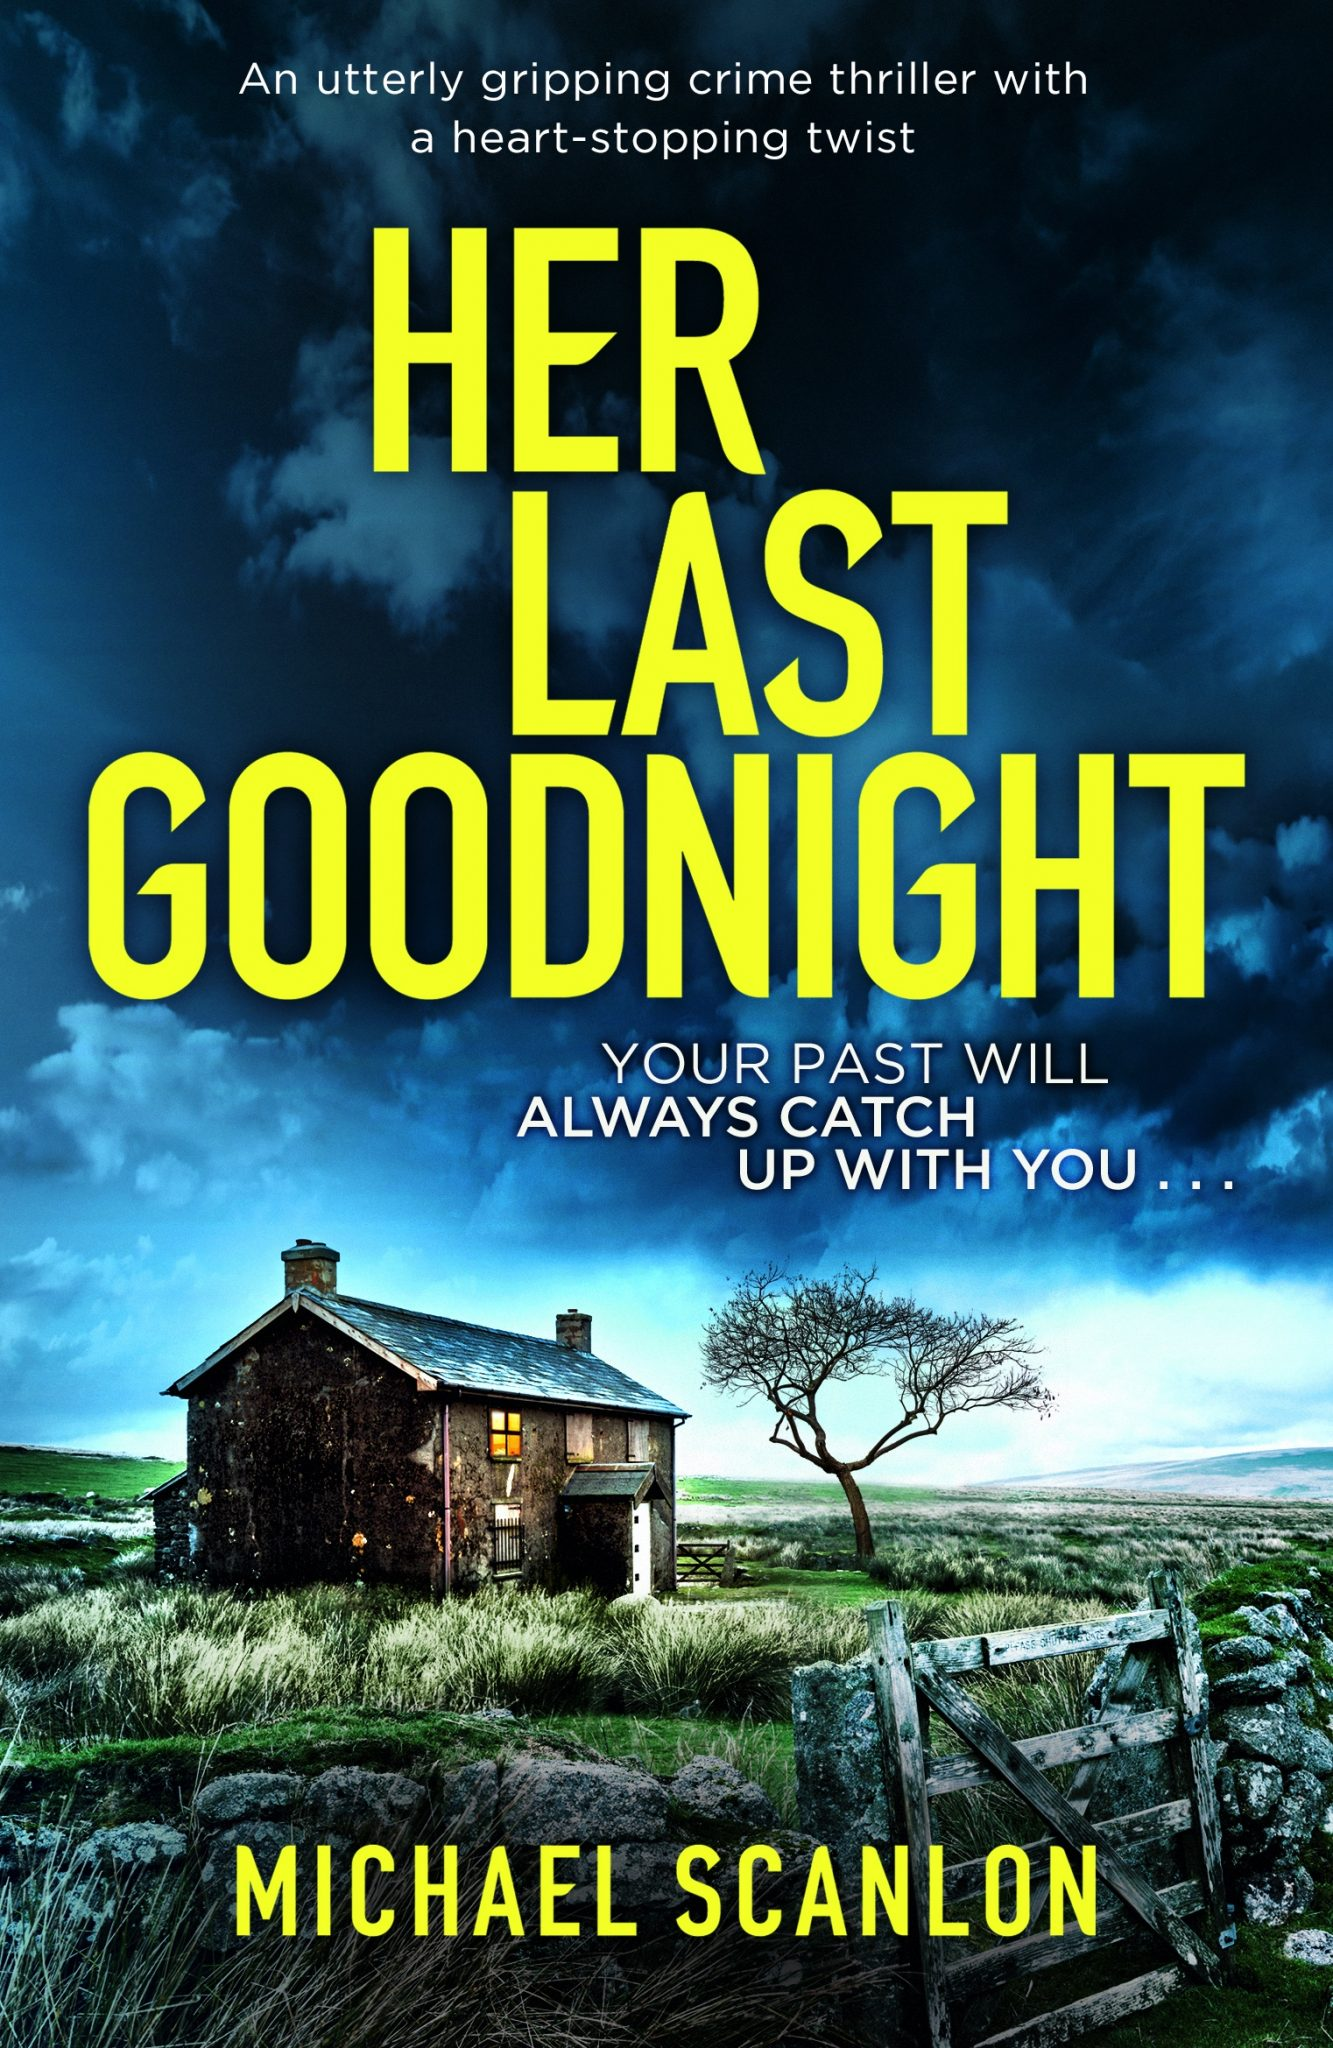 Her Last Goodnight by Michael Scanlon